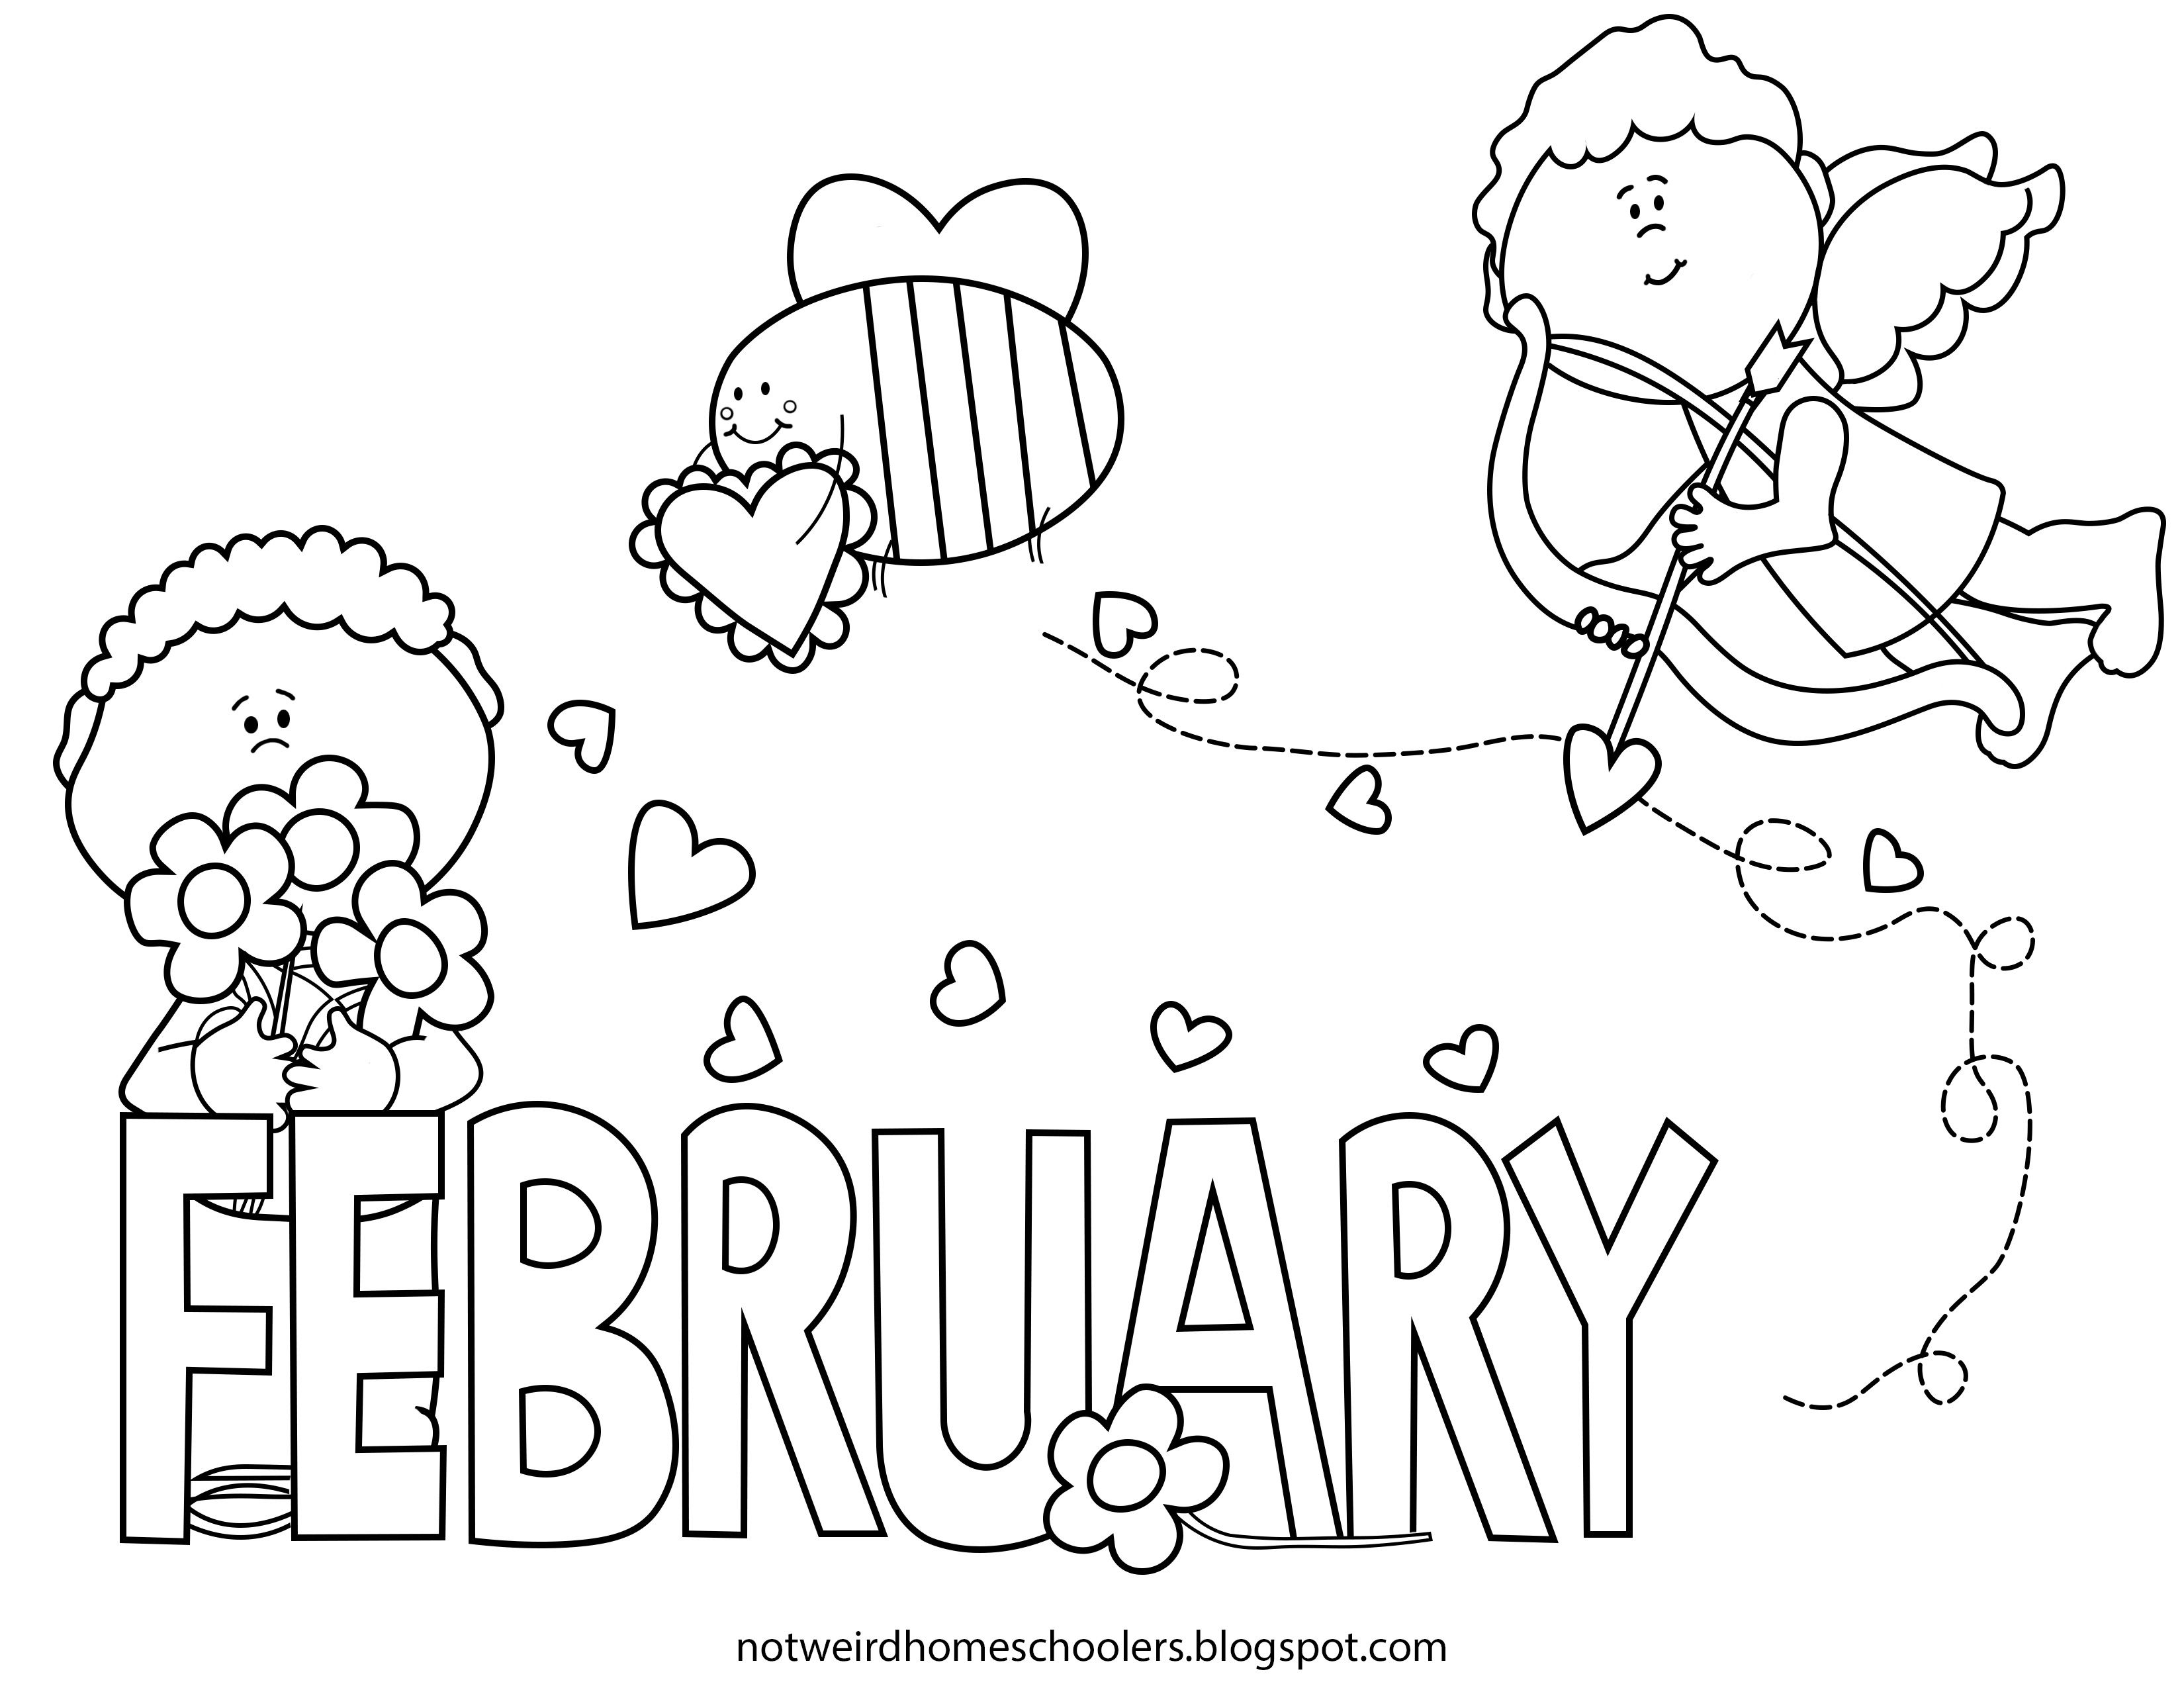 Valentines Day Is Coming Up Soon Here S A Free Printable